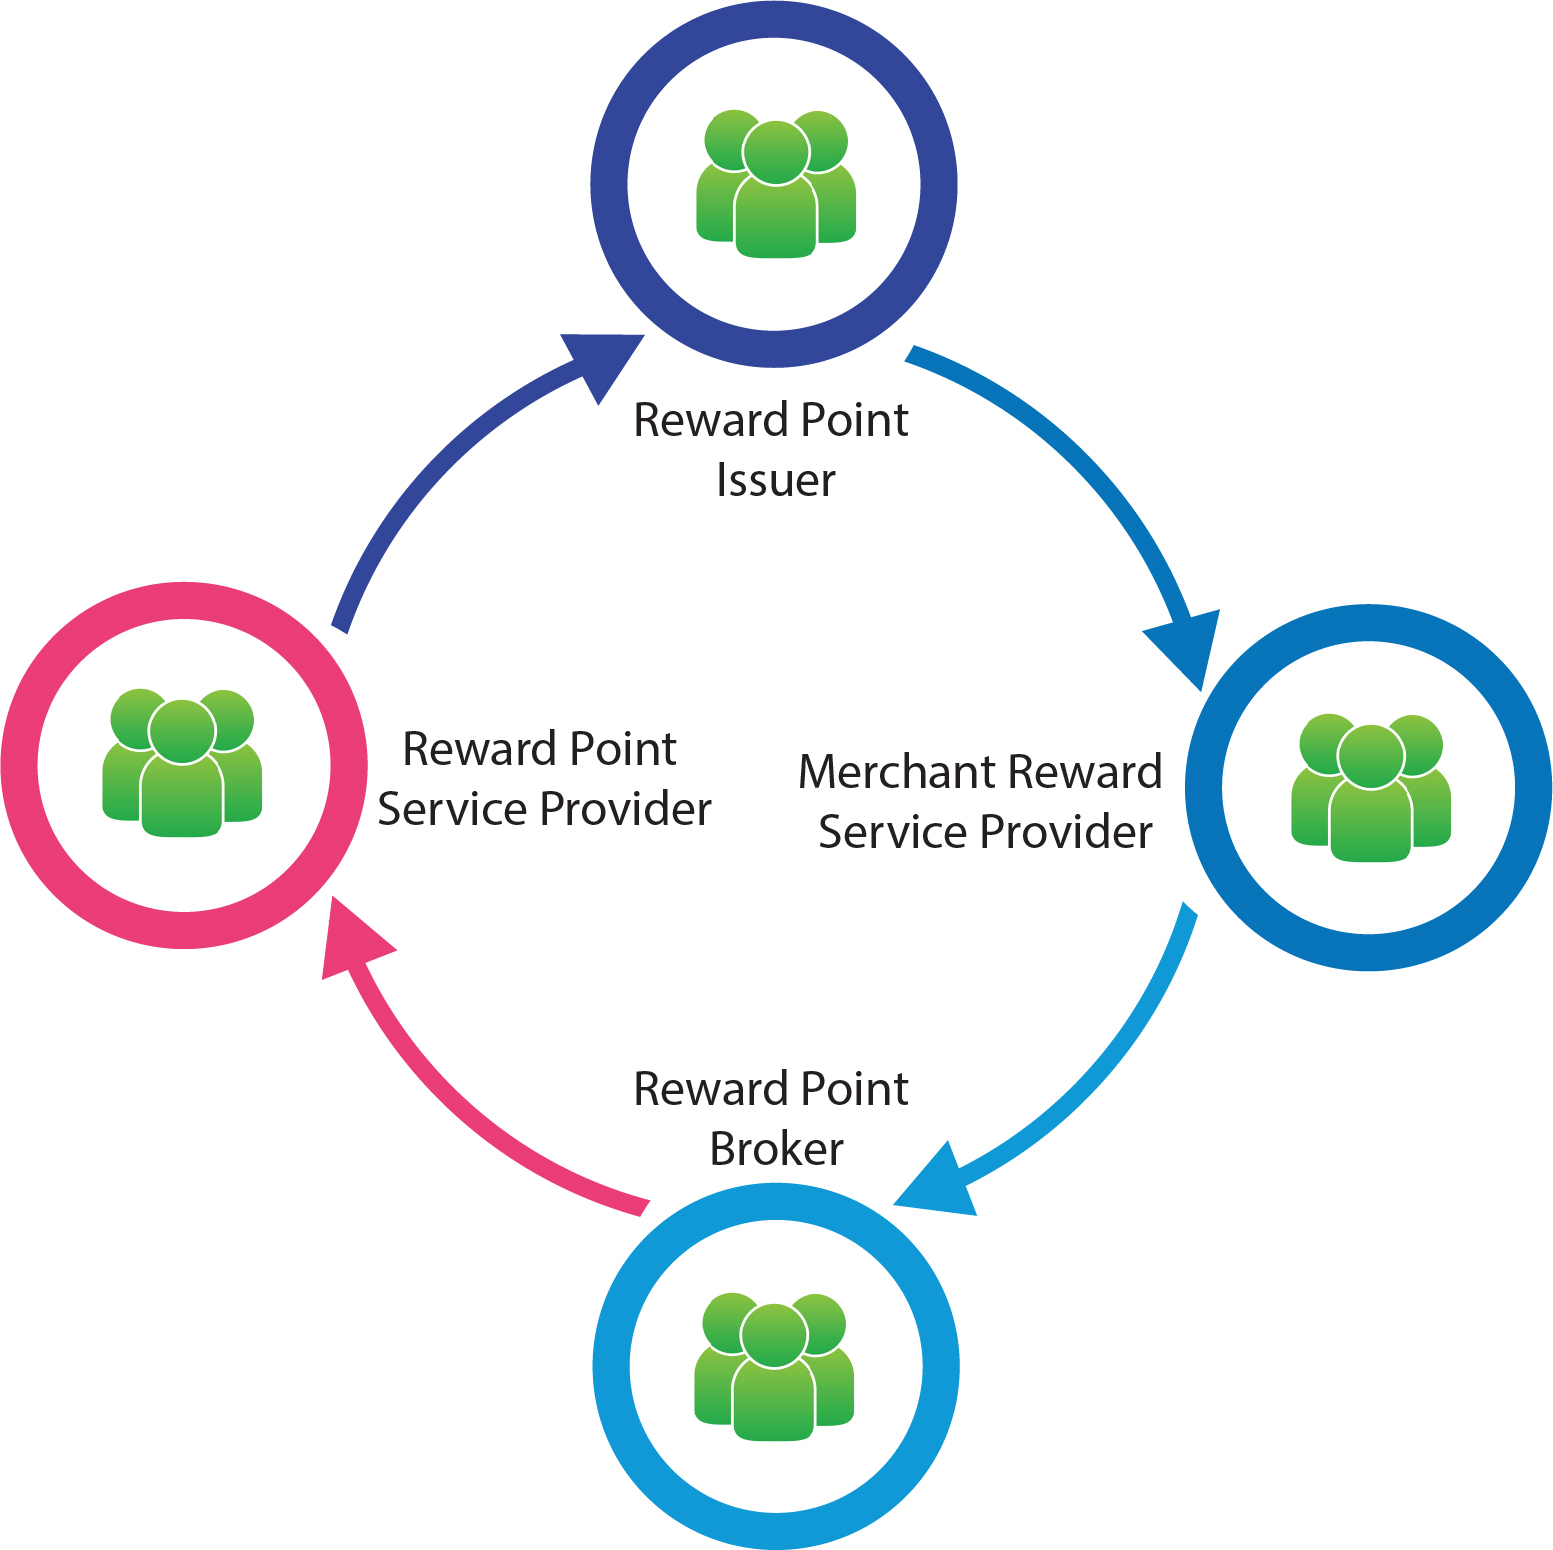 Reward Point Issuer - Reward point program owner. Win/Win partner of our platform |                  Merchant Reward Service Provider - Provide points issuance and operation platform services for merchants |                 Reward Point Broker - Provide services between reward program owner such as coupon purchase and point exchange |                 Reward Point Service Provider - Provide reward point owner / consumers value added services involving multiple reward programs (e.g. reward points sharing) |                 AsiaTop Loyalty | ecosystem | characters | benefits